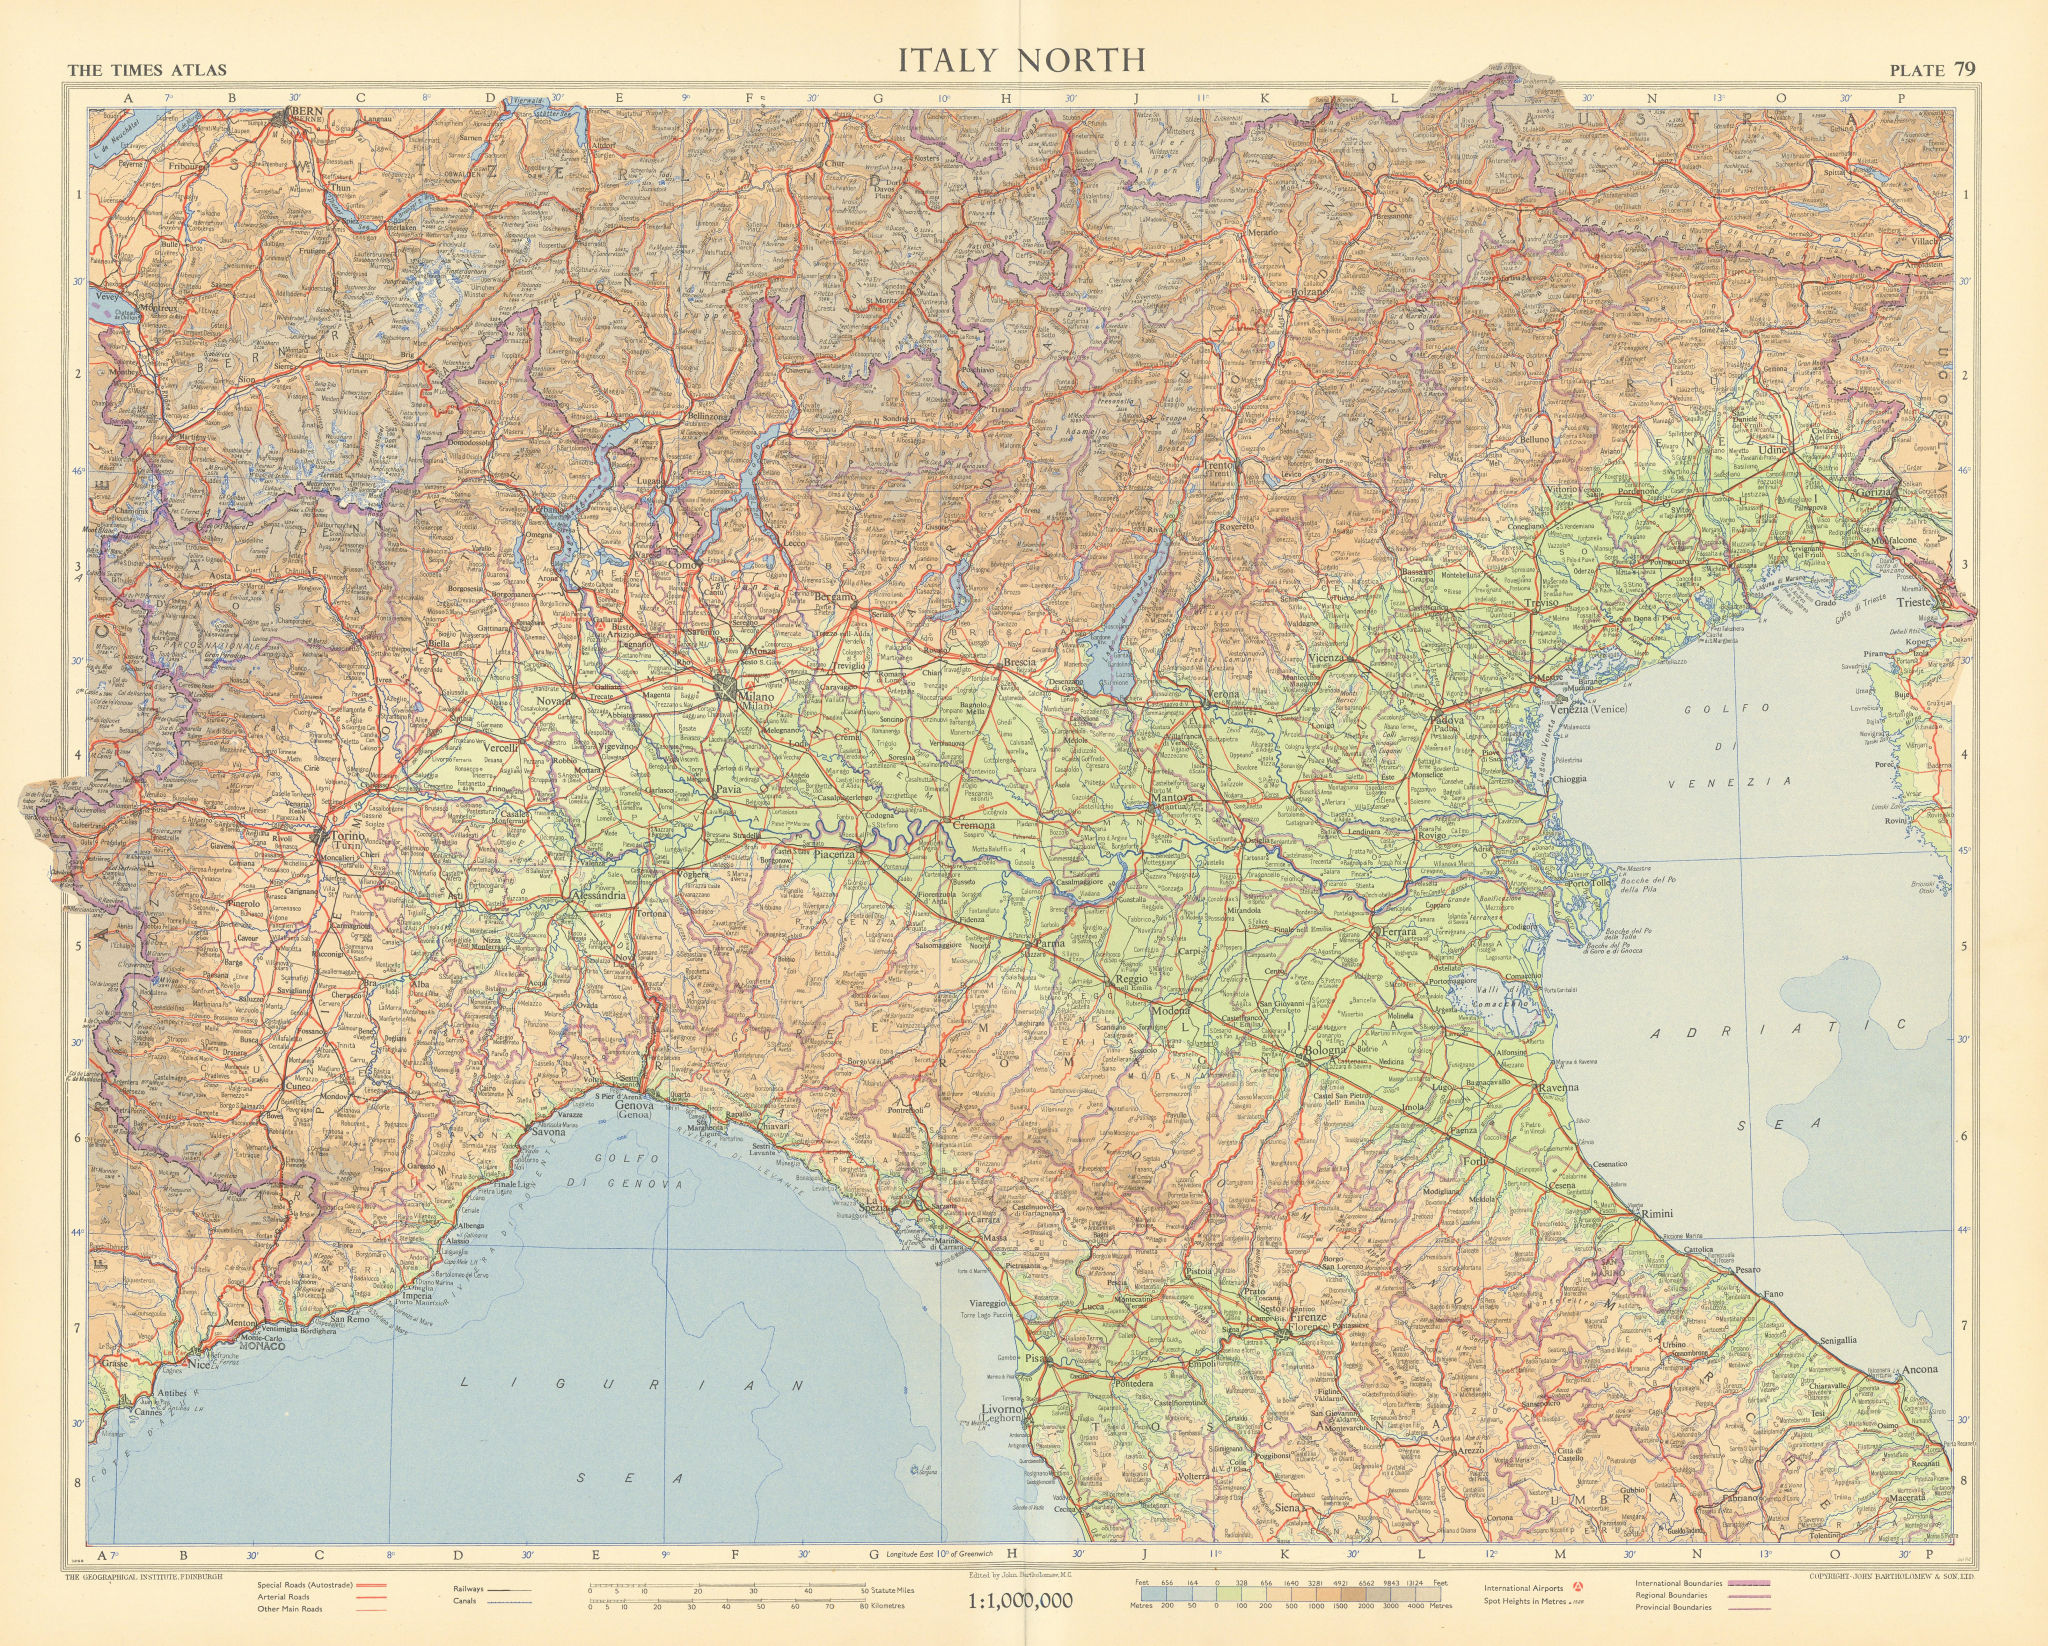 Italy north. Road network Autostrade. TIMES 1956 old vintage map plan chart